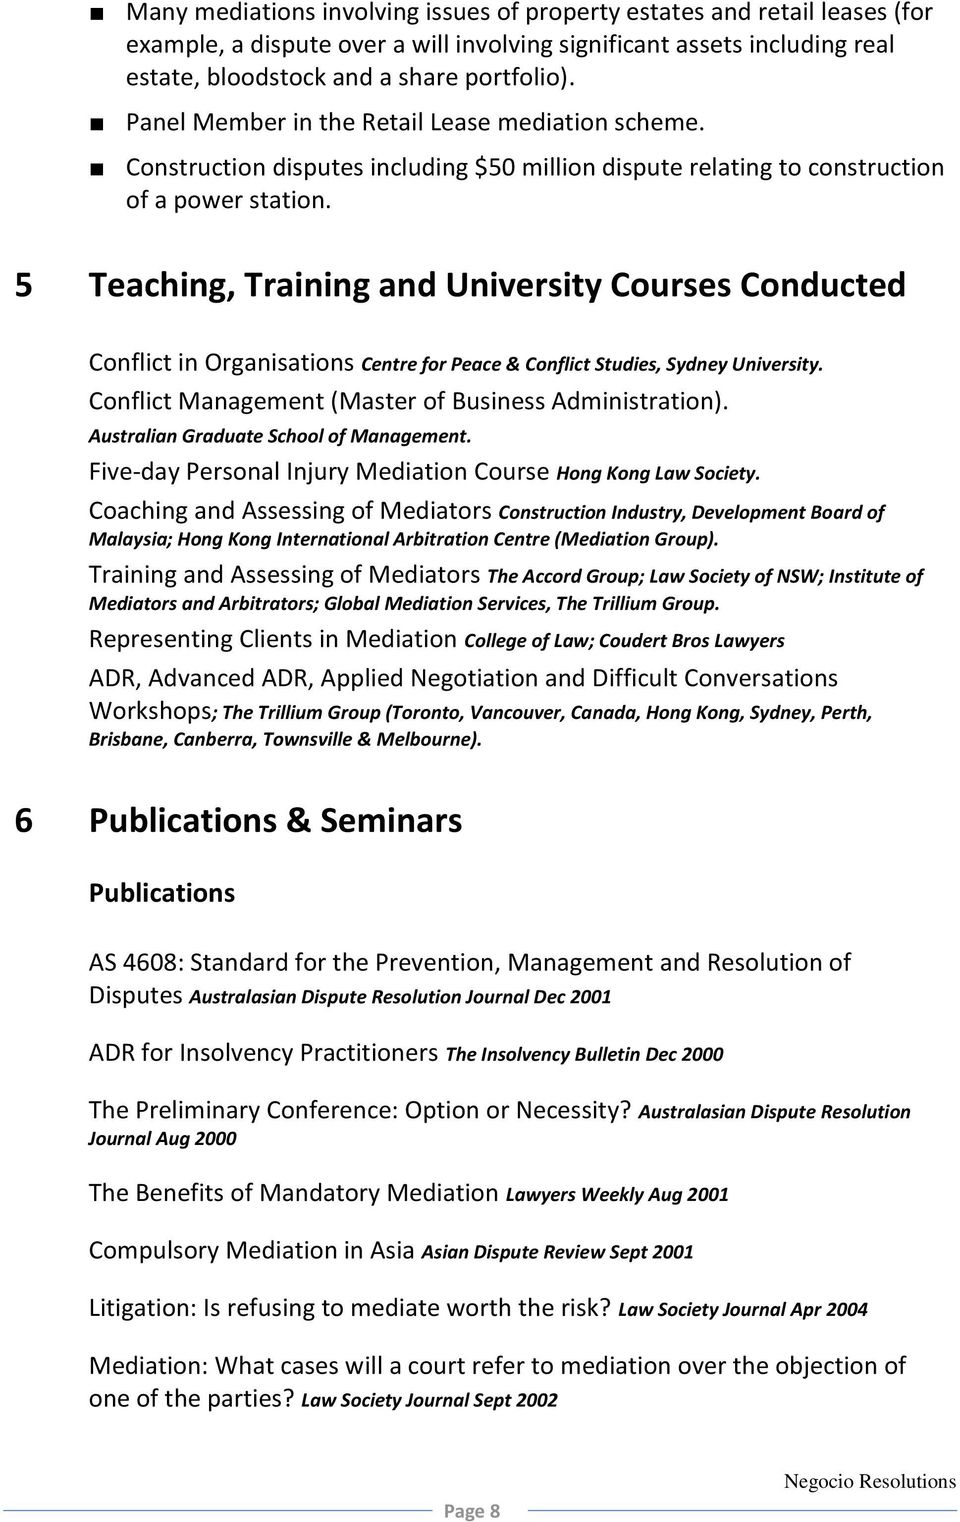 5 Teaching, Training and University Courses Conducted Conflict in Organisations Centre for Peace & Conflict Studies, Sydney University. Conflict Management (Master of Business Administration).